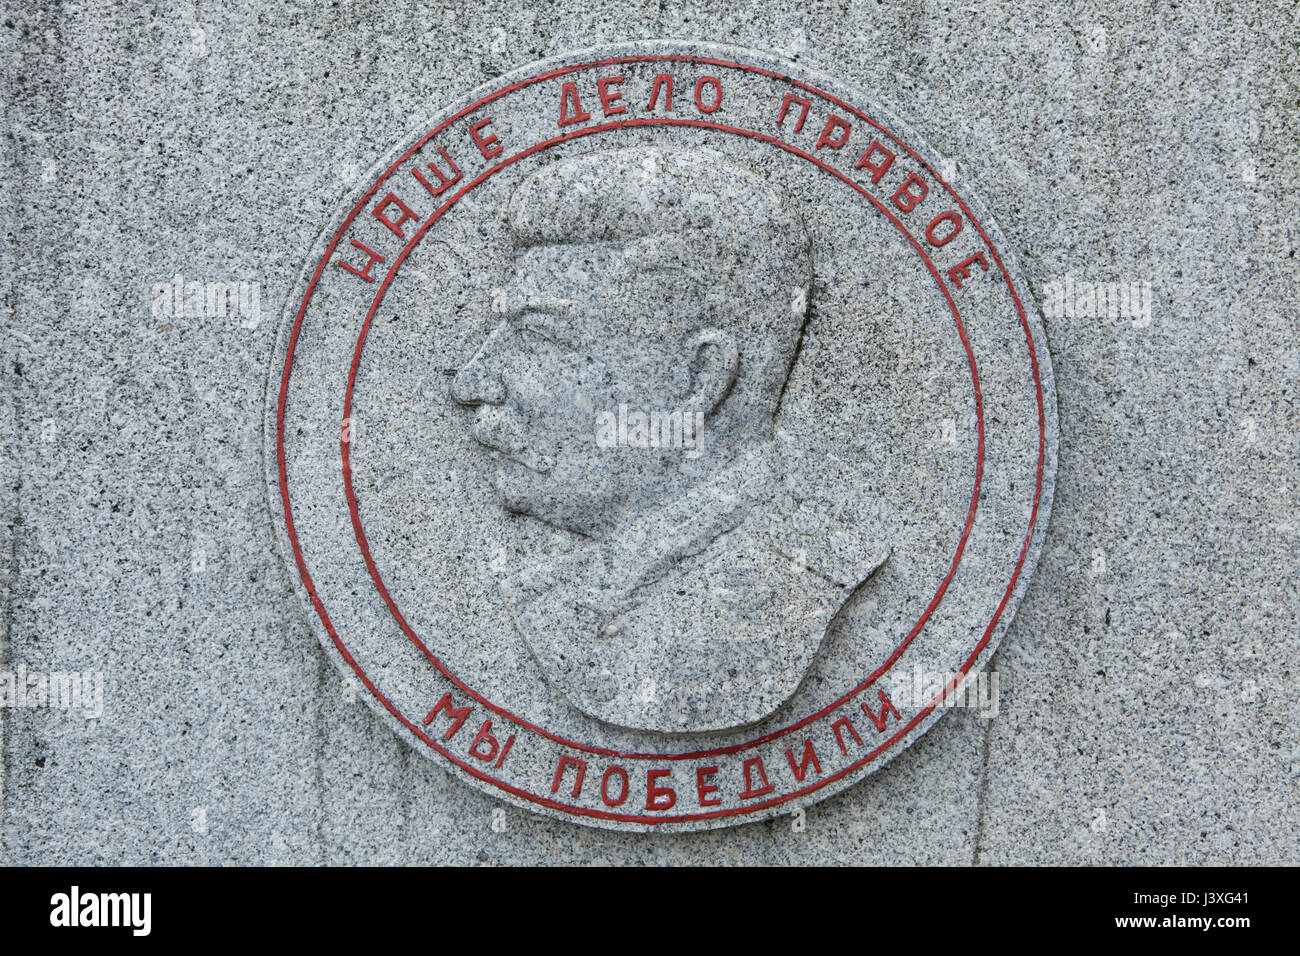 Soviet dictator Joseph Stalin depicted on the Soviet War Memorial at the Central Cemetery in Brno, Czech Republic. - Stock Image